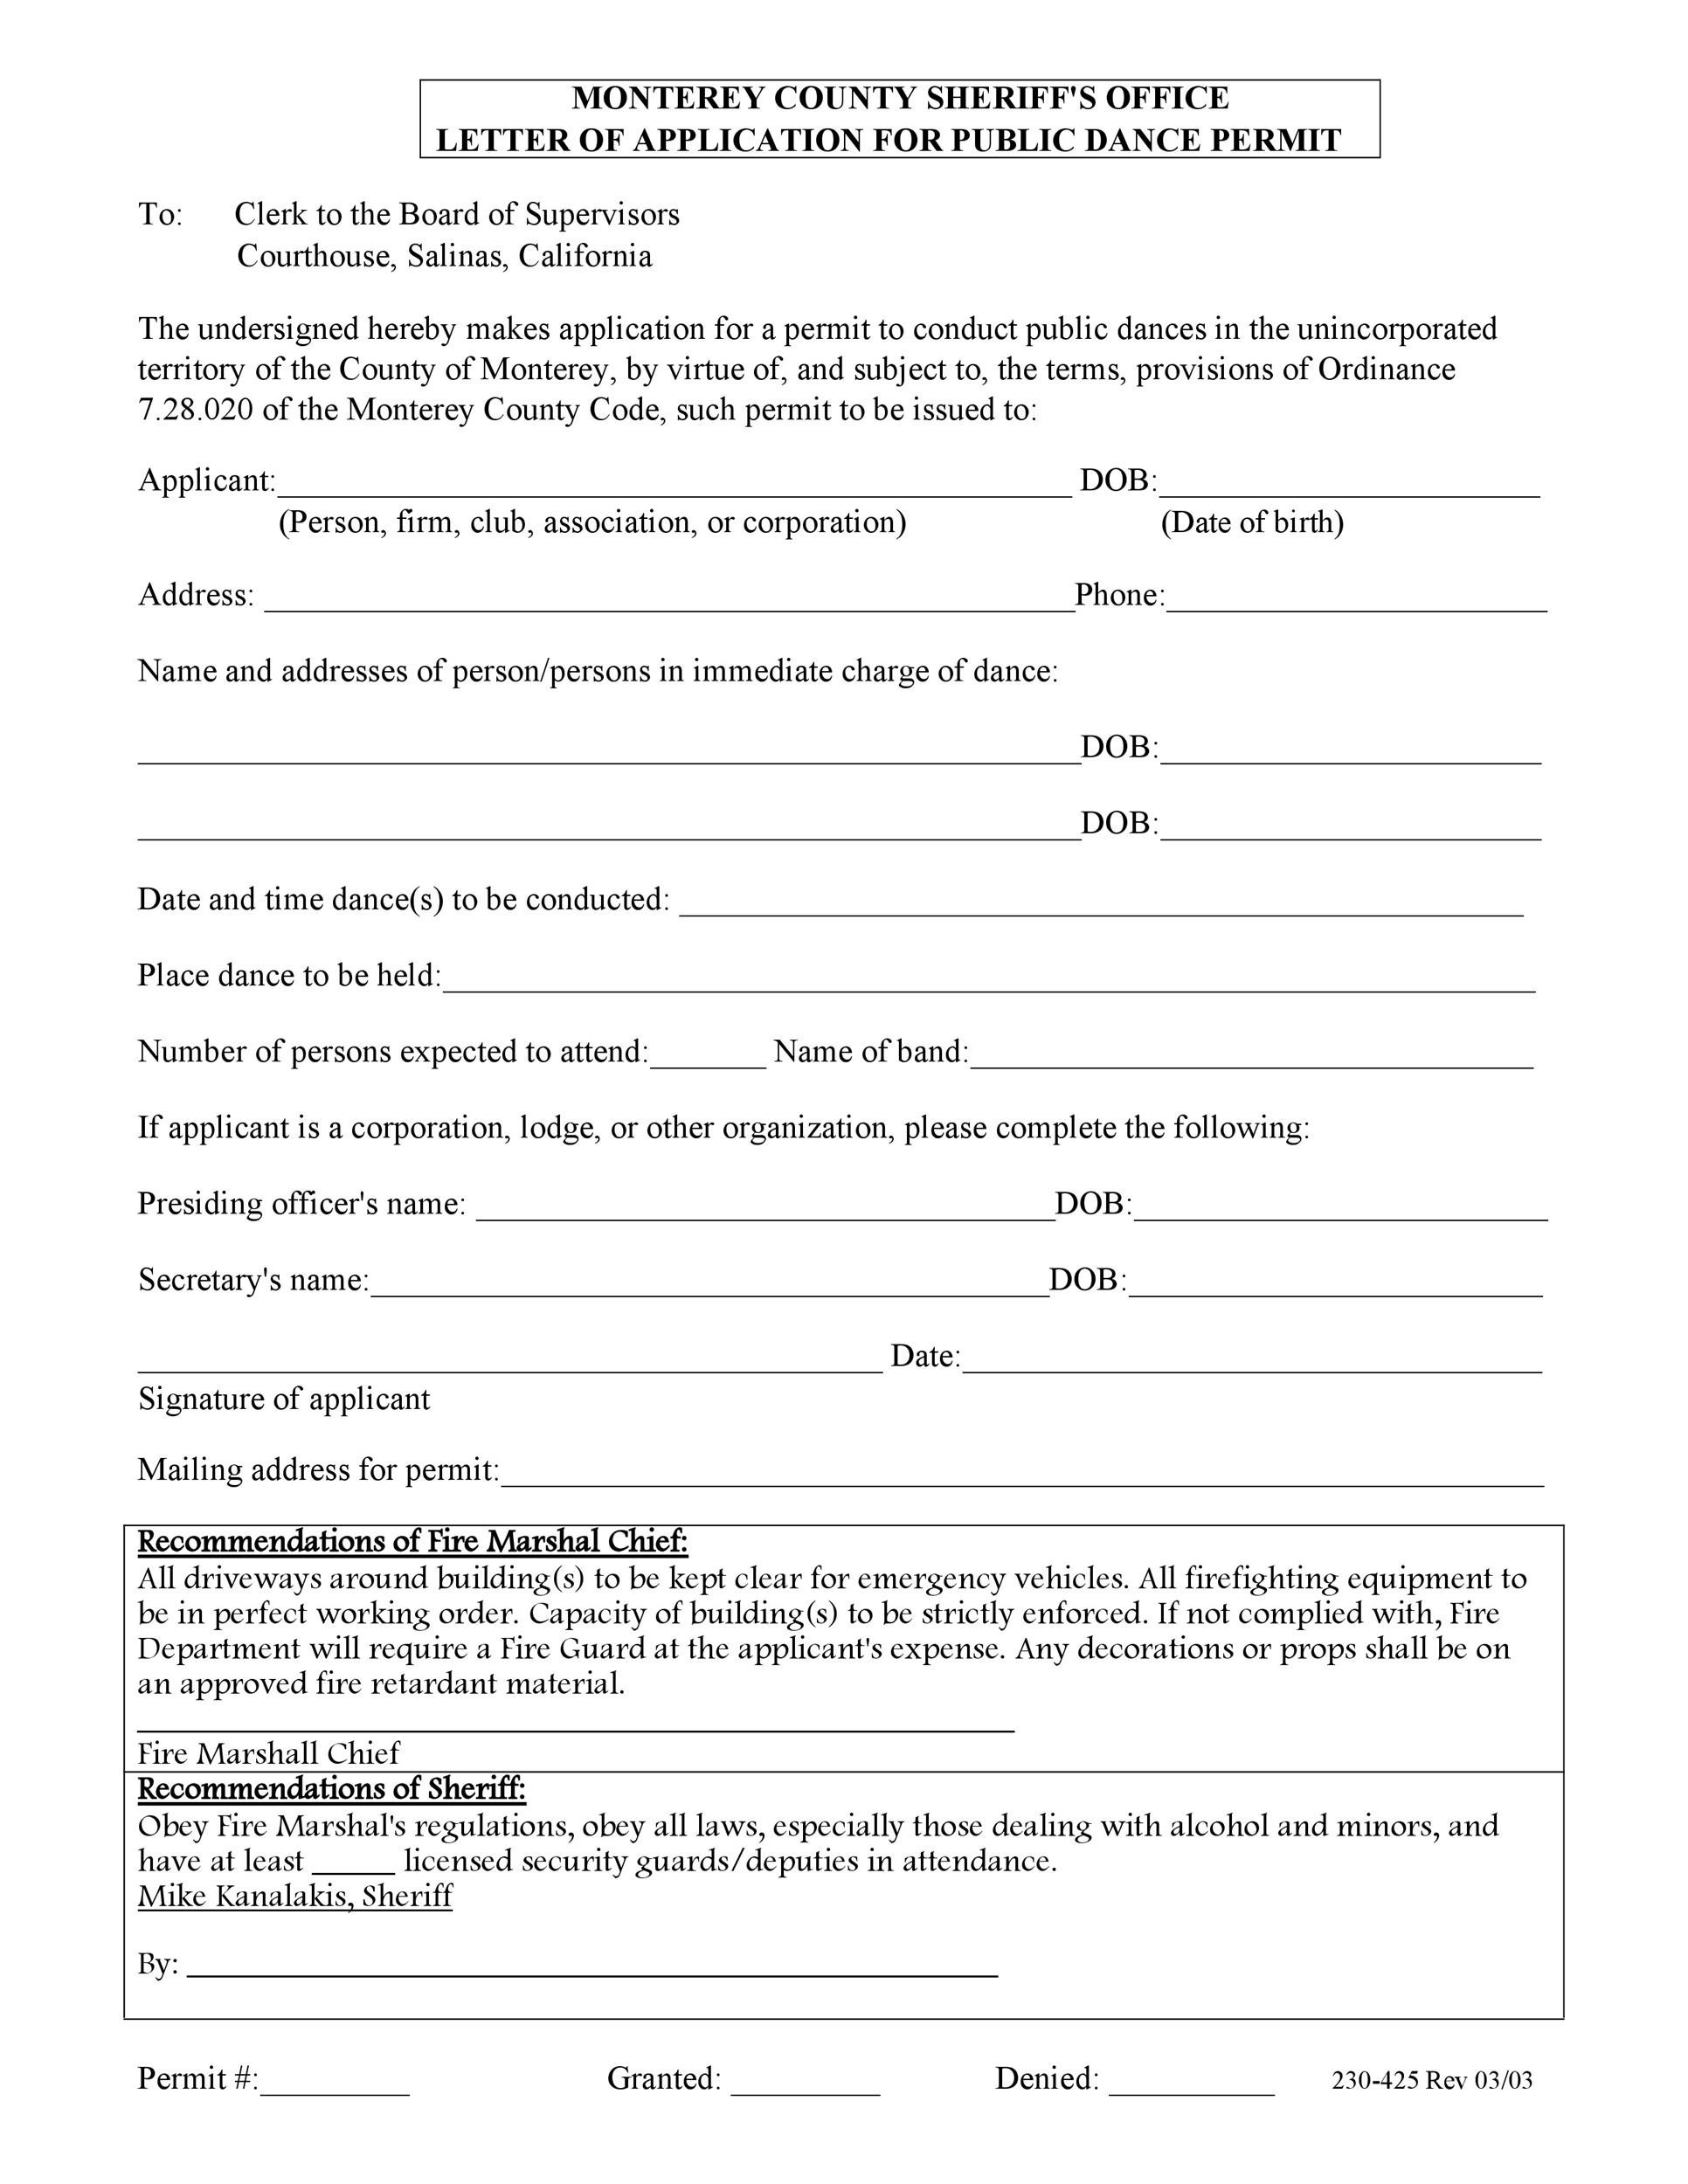 Free letter of application 48